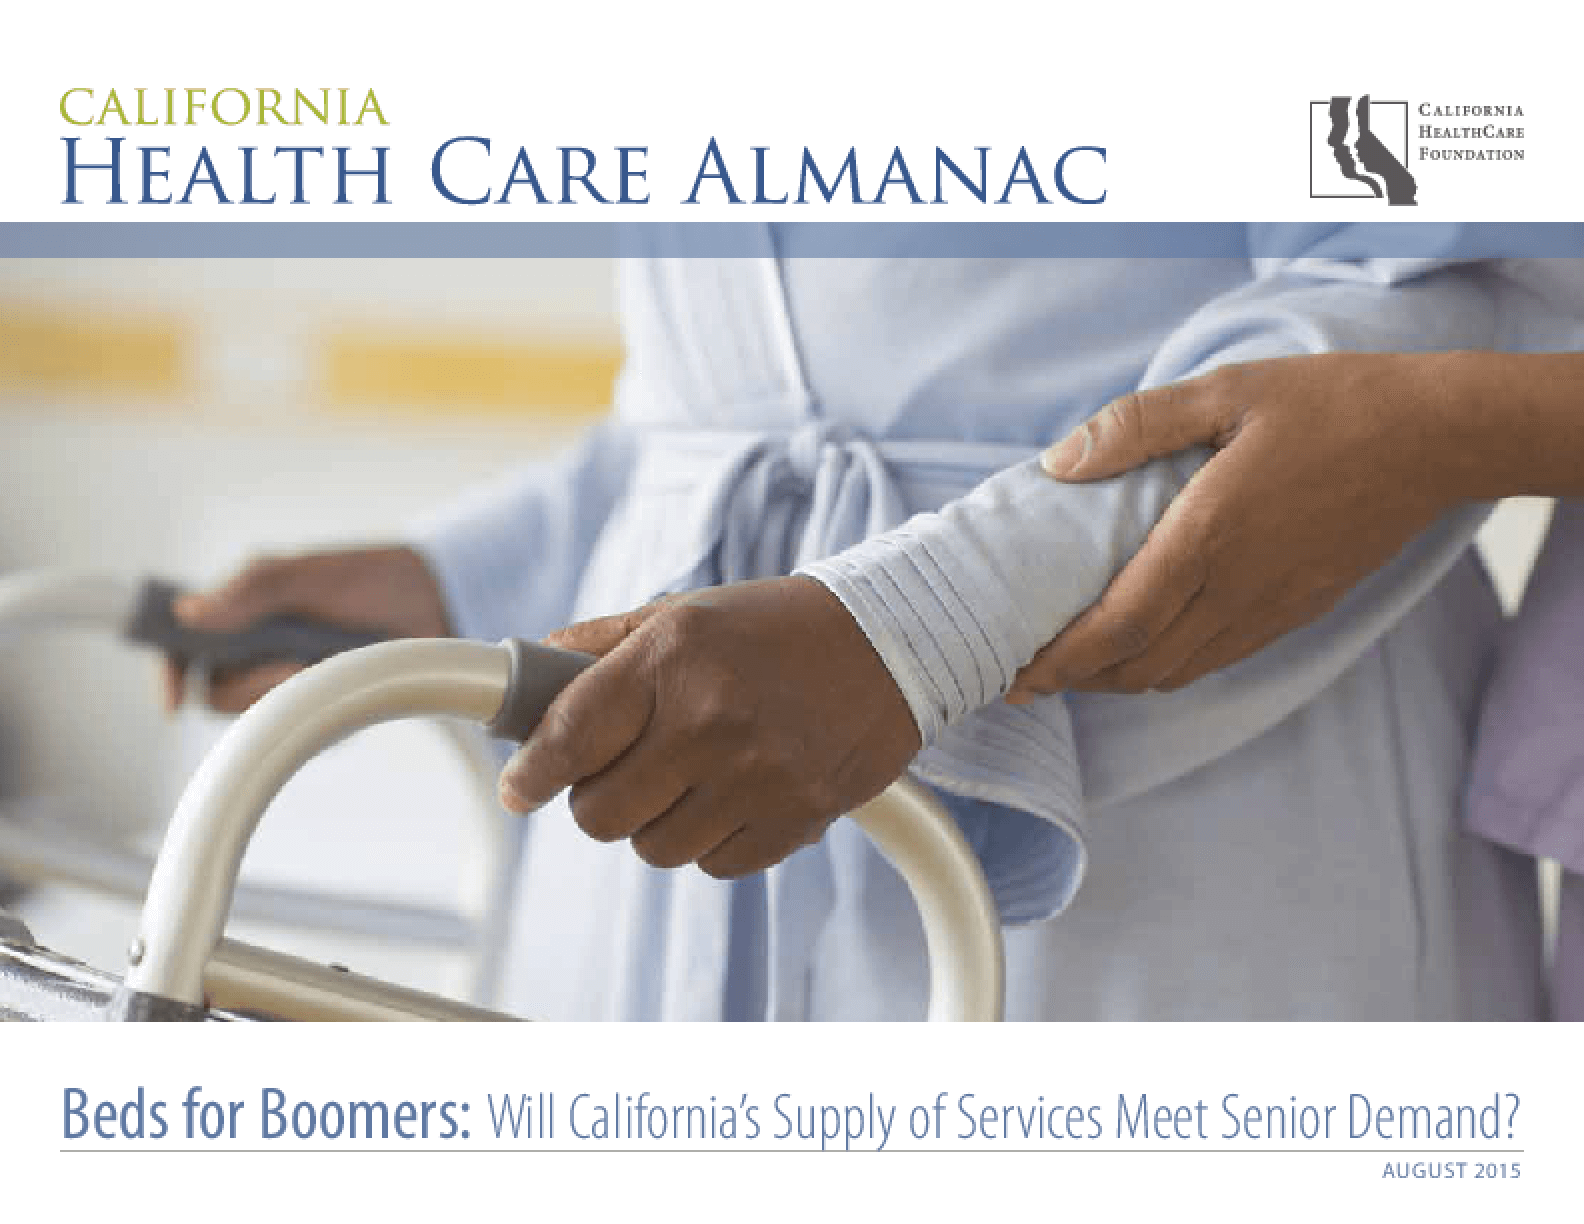 Beds for Boomers: Will California's Supply of Services Meet Senior Demand?